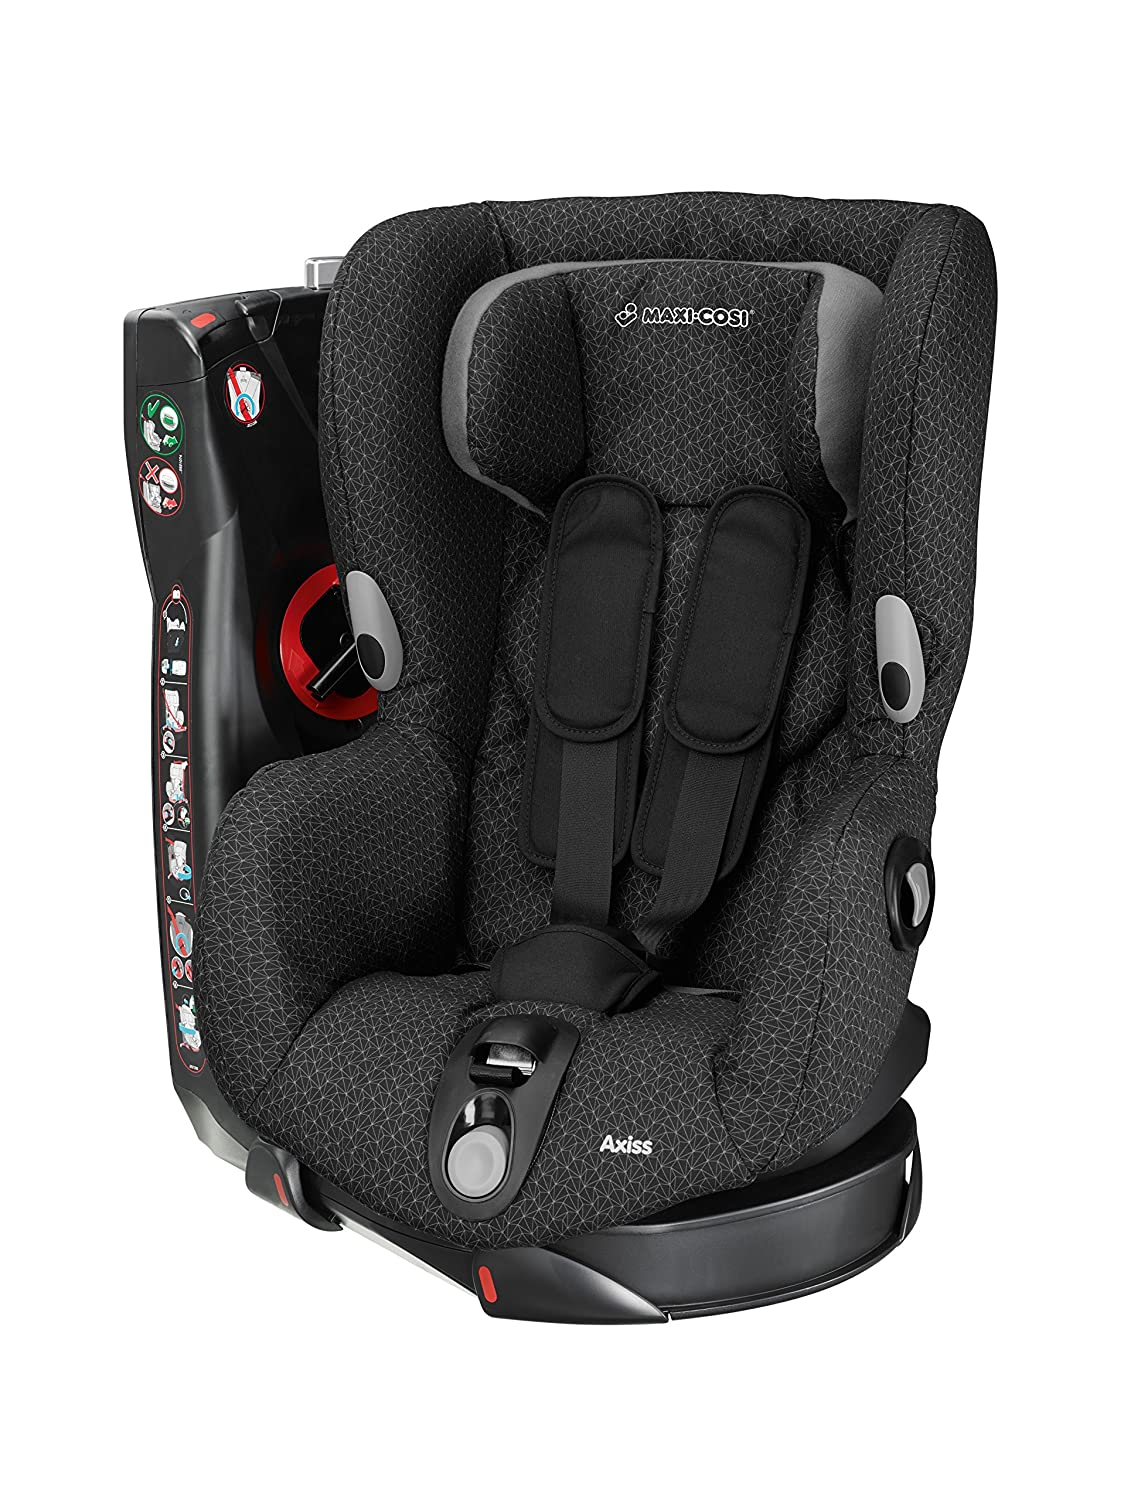 Maxi-Cosi Axiss Toddler Car Seat Group 1 Swivel Car Seat, 9 Months-4 Years, Vivid Red, 9-18 kg Dorel UK Limited 8608721110